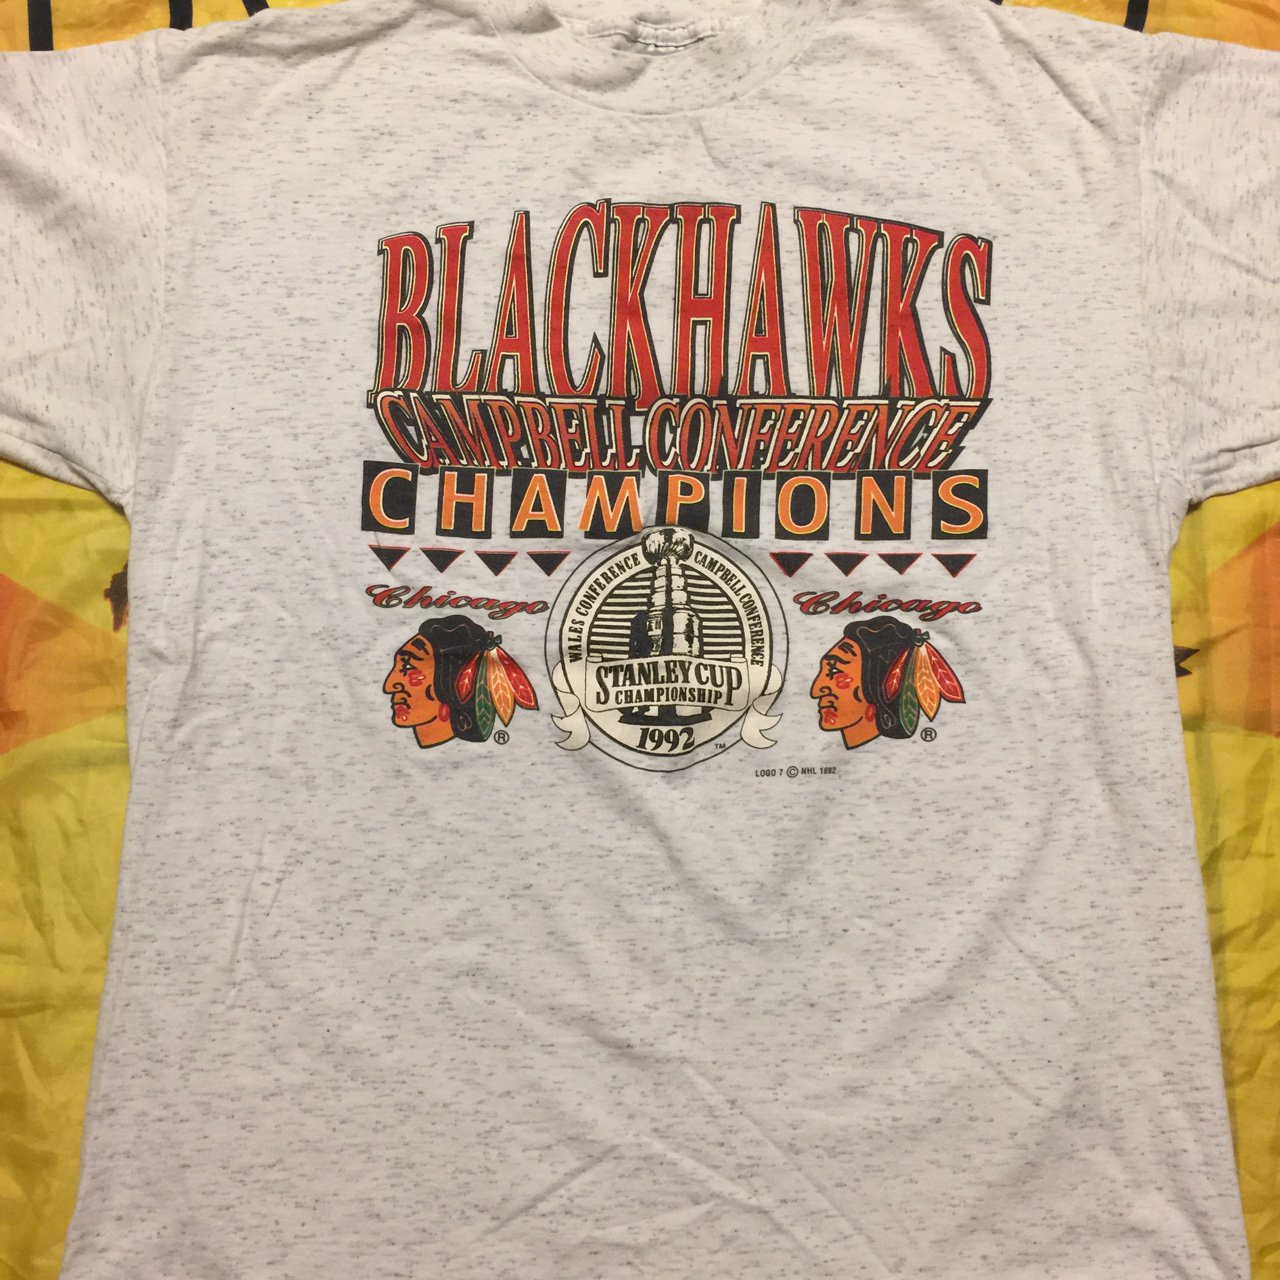 Vintage Chicago Blackhawks shirt from 1992 Size 9 10 Free - Depop 6d27f4780